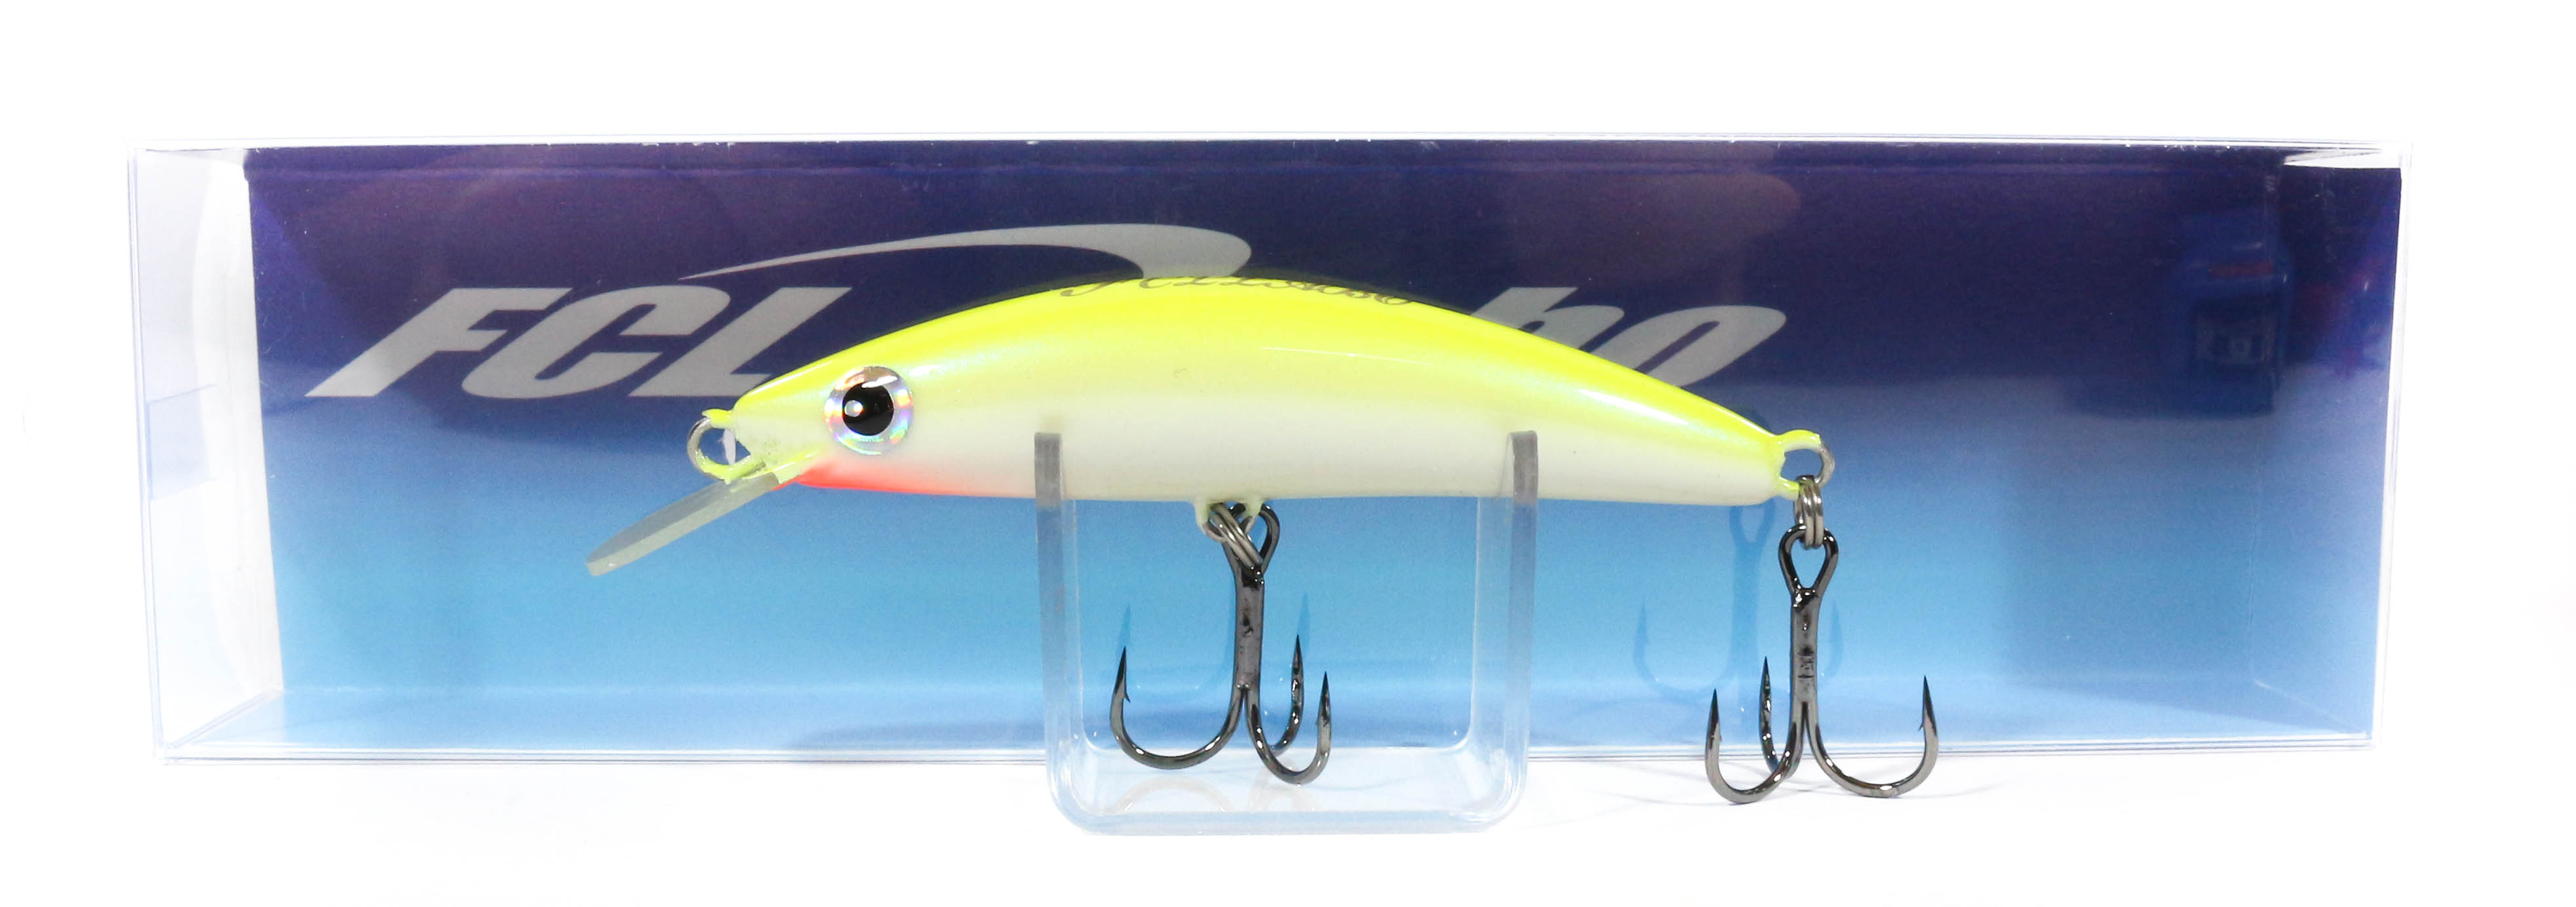 FCL Labo Lure HKTM 67S Sinking Lure CH (0510)